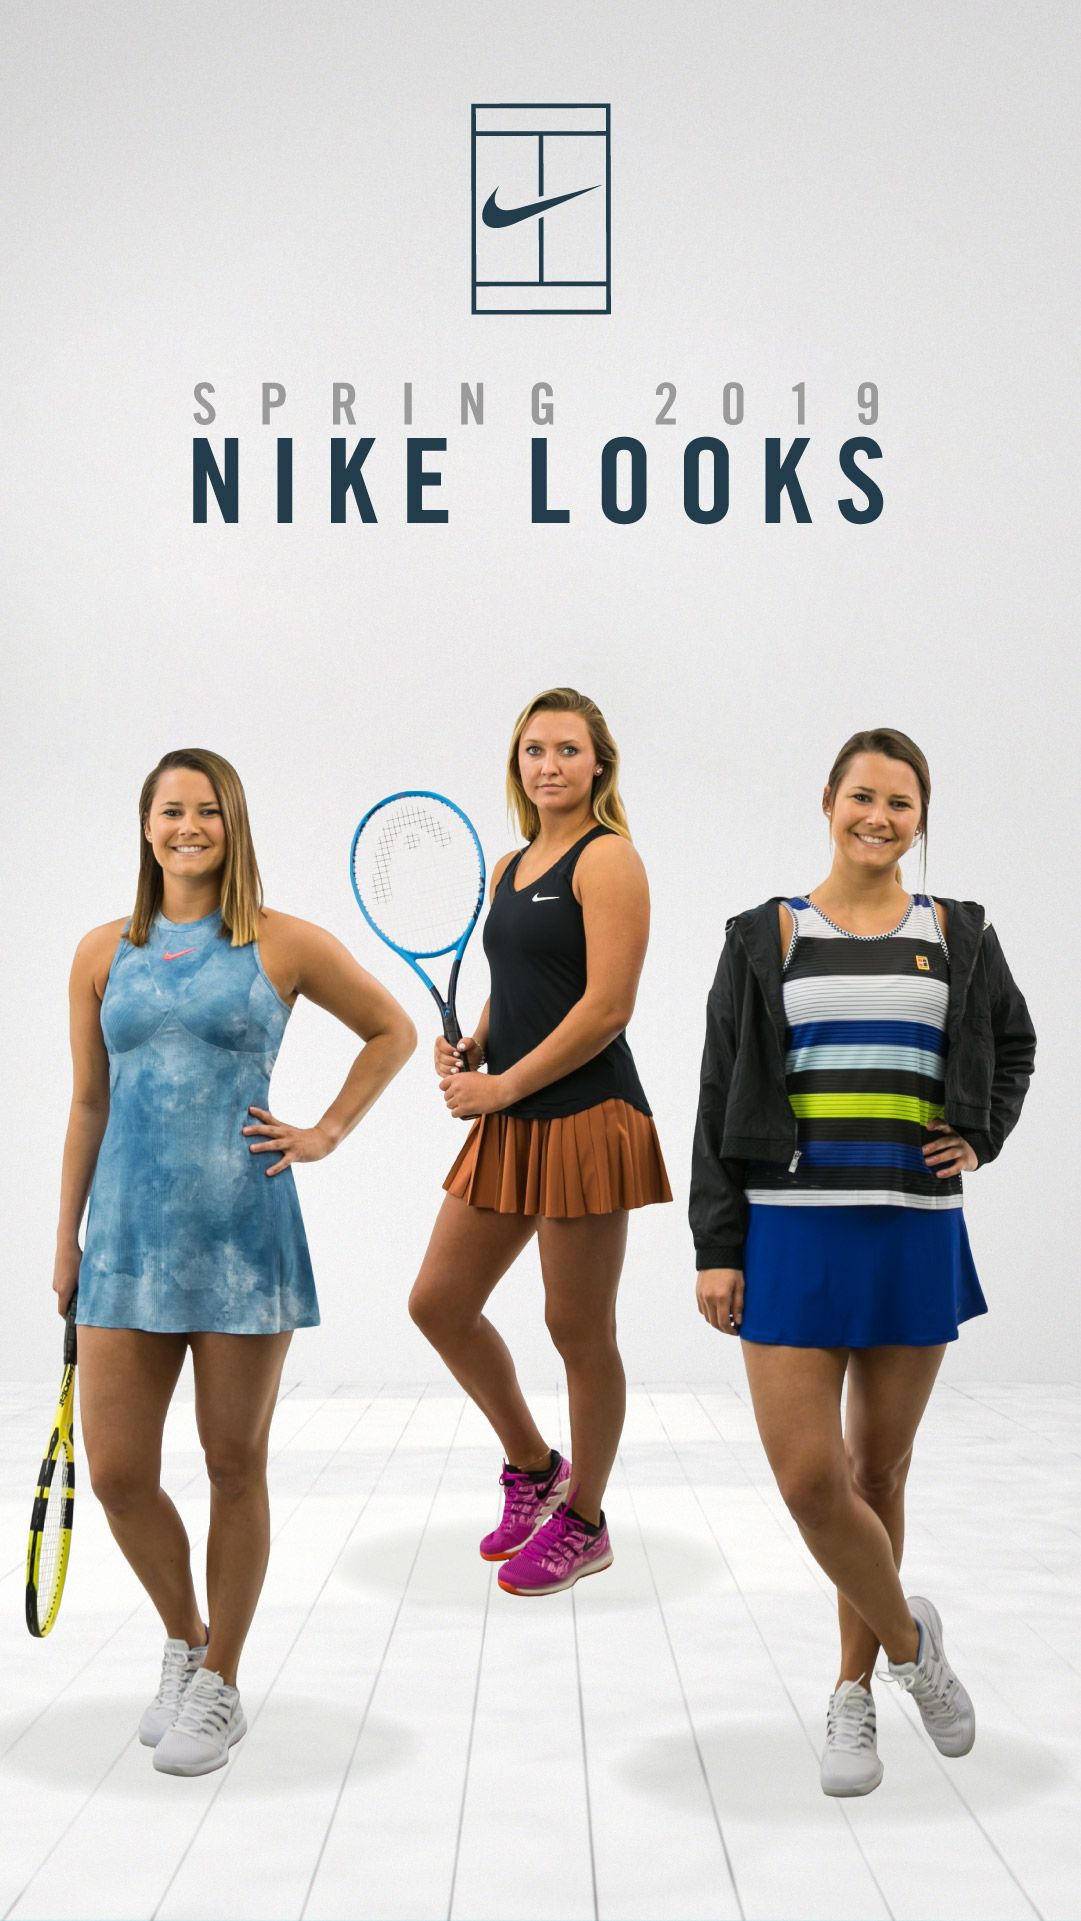 Nike Women S Looks Spring 2019 Tennis Outfit Women Tennis Clothes Nike Looks